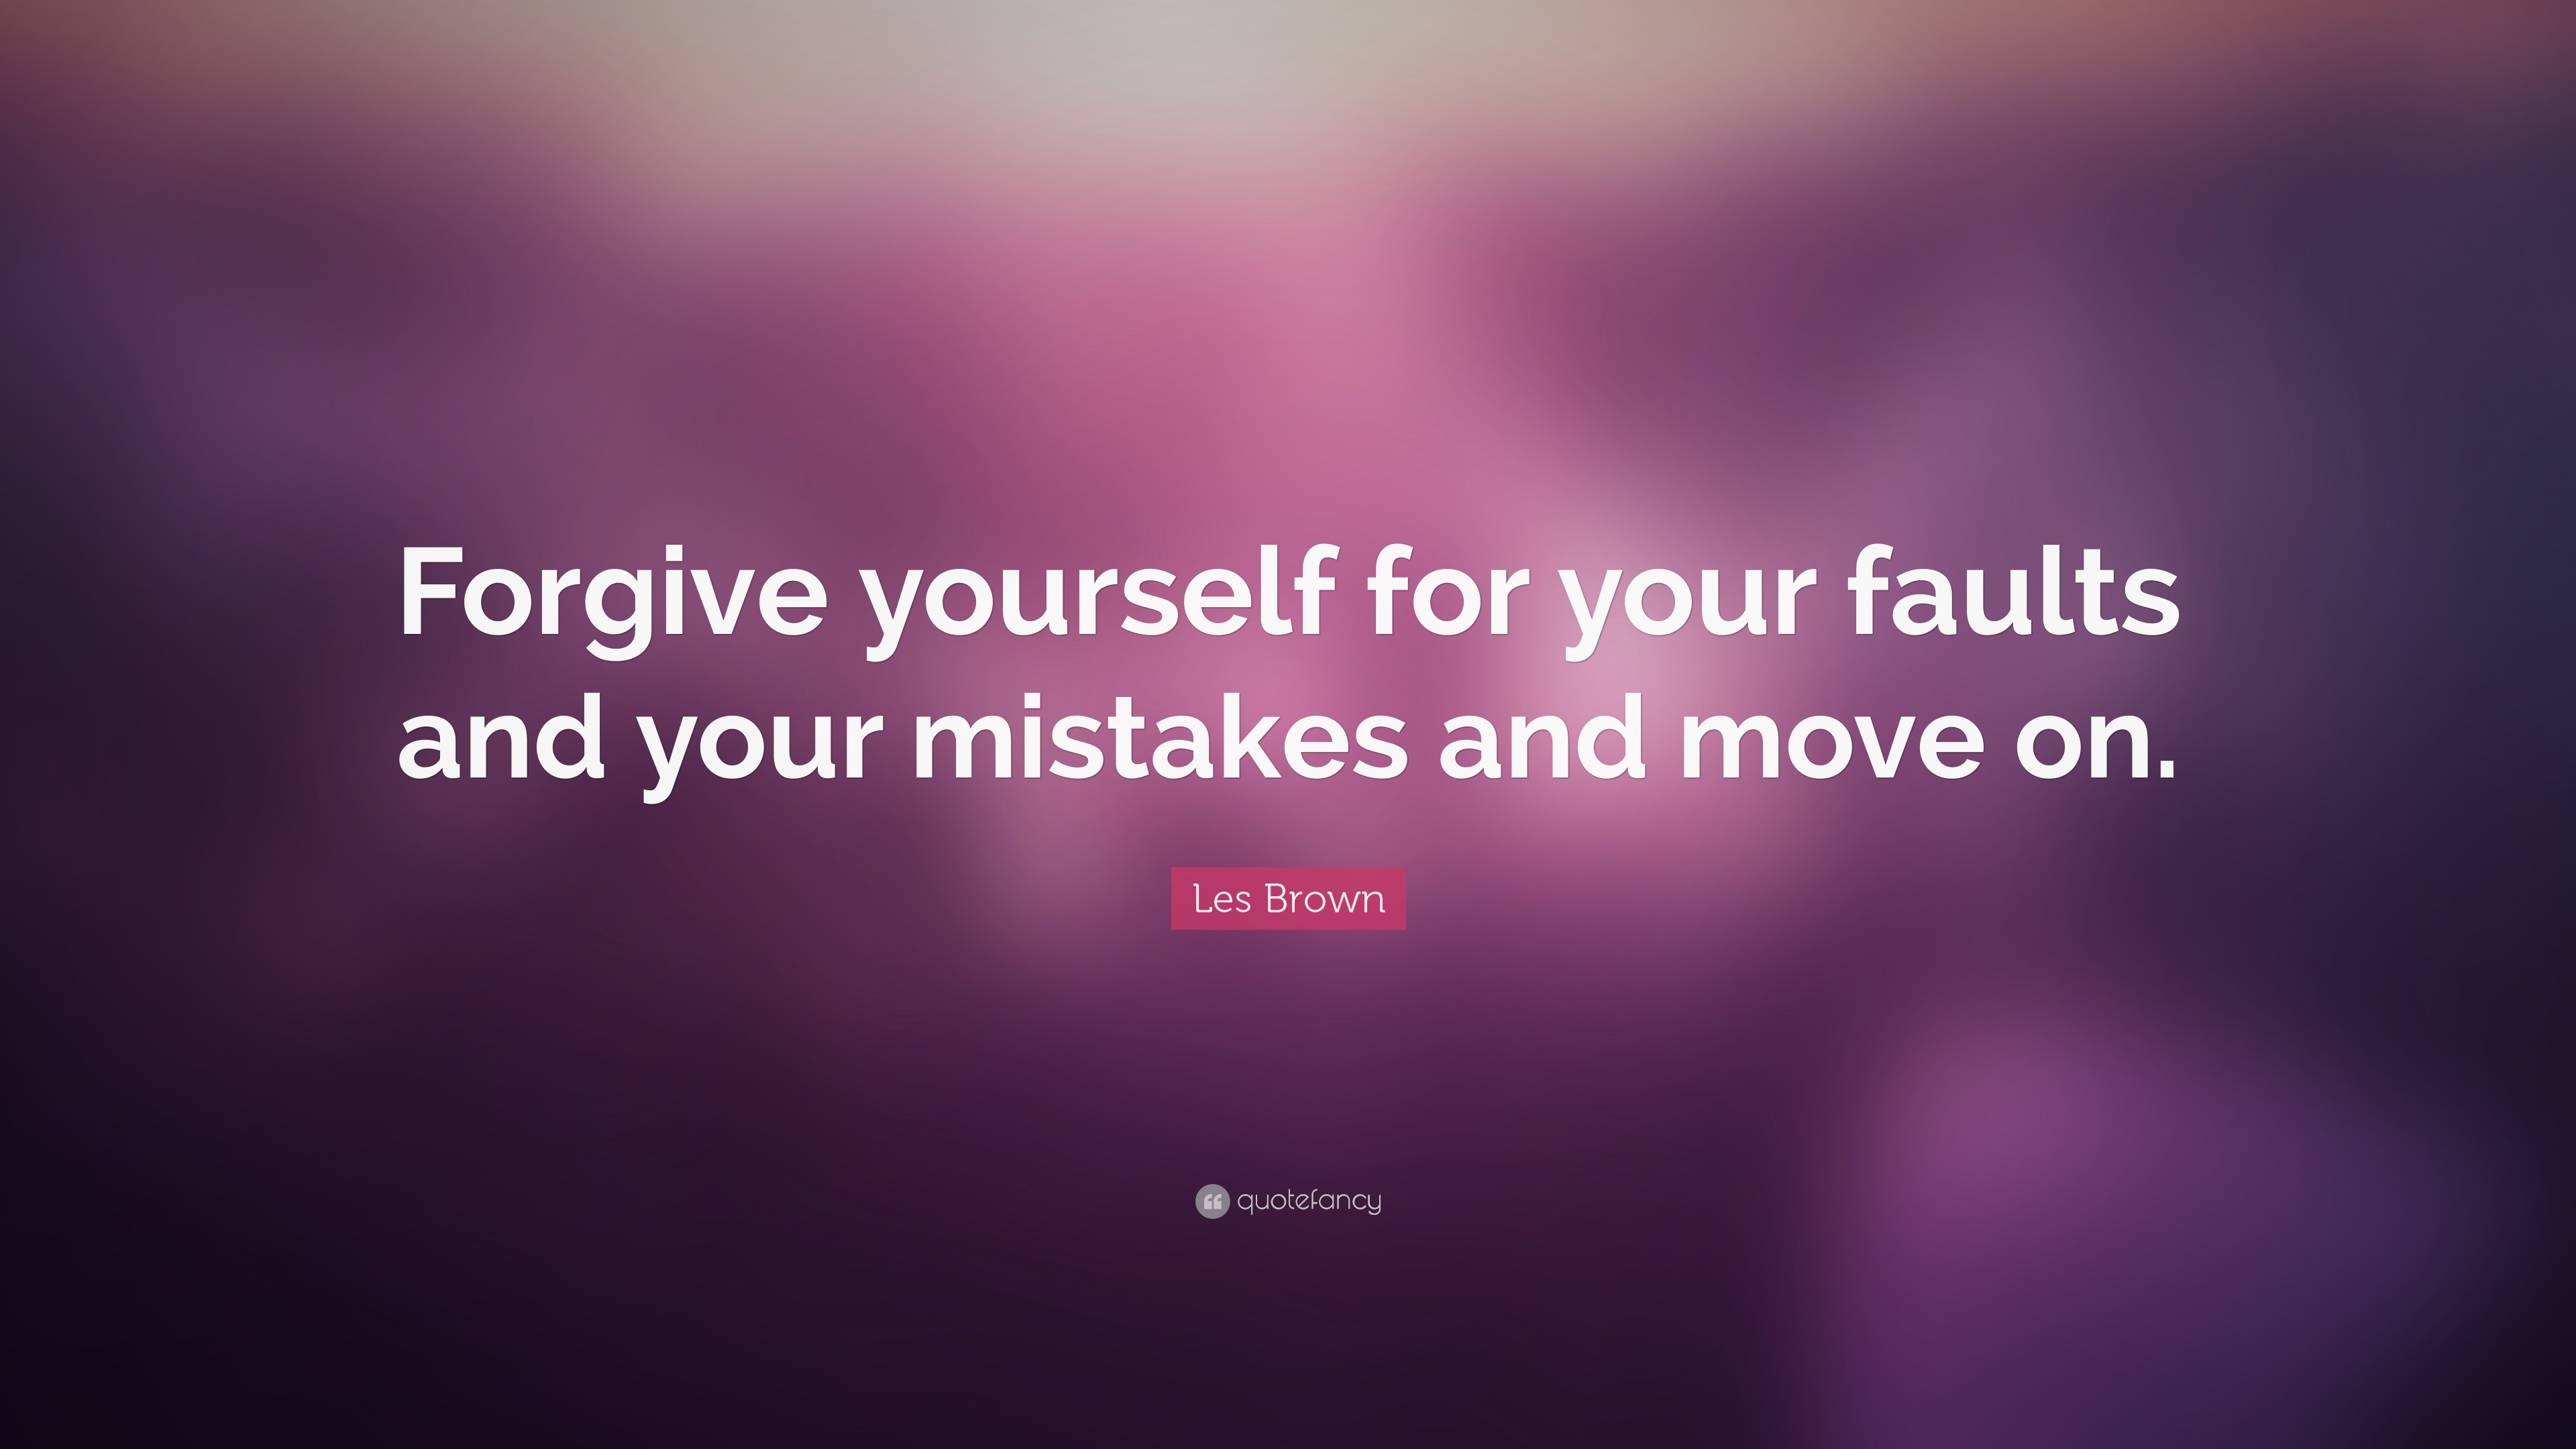 Les Brown Quote Forgive Yourself For Your Faults And Your Mistakes